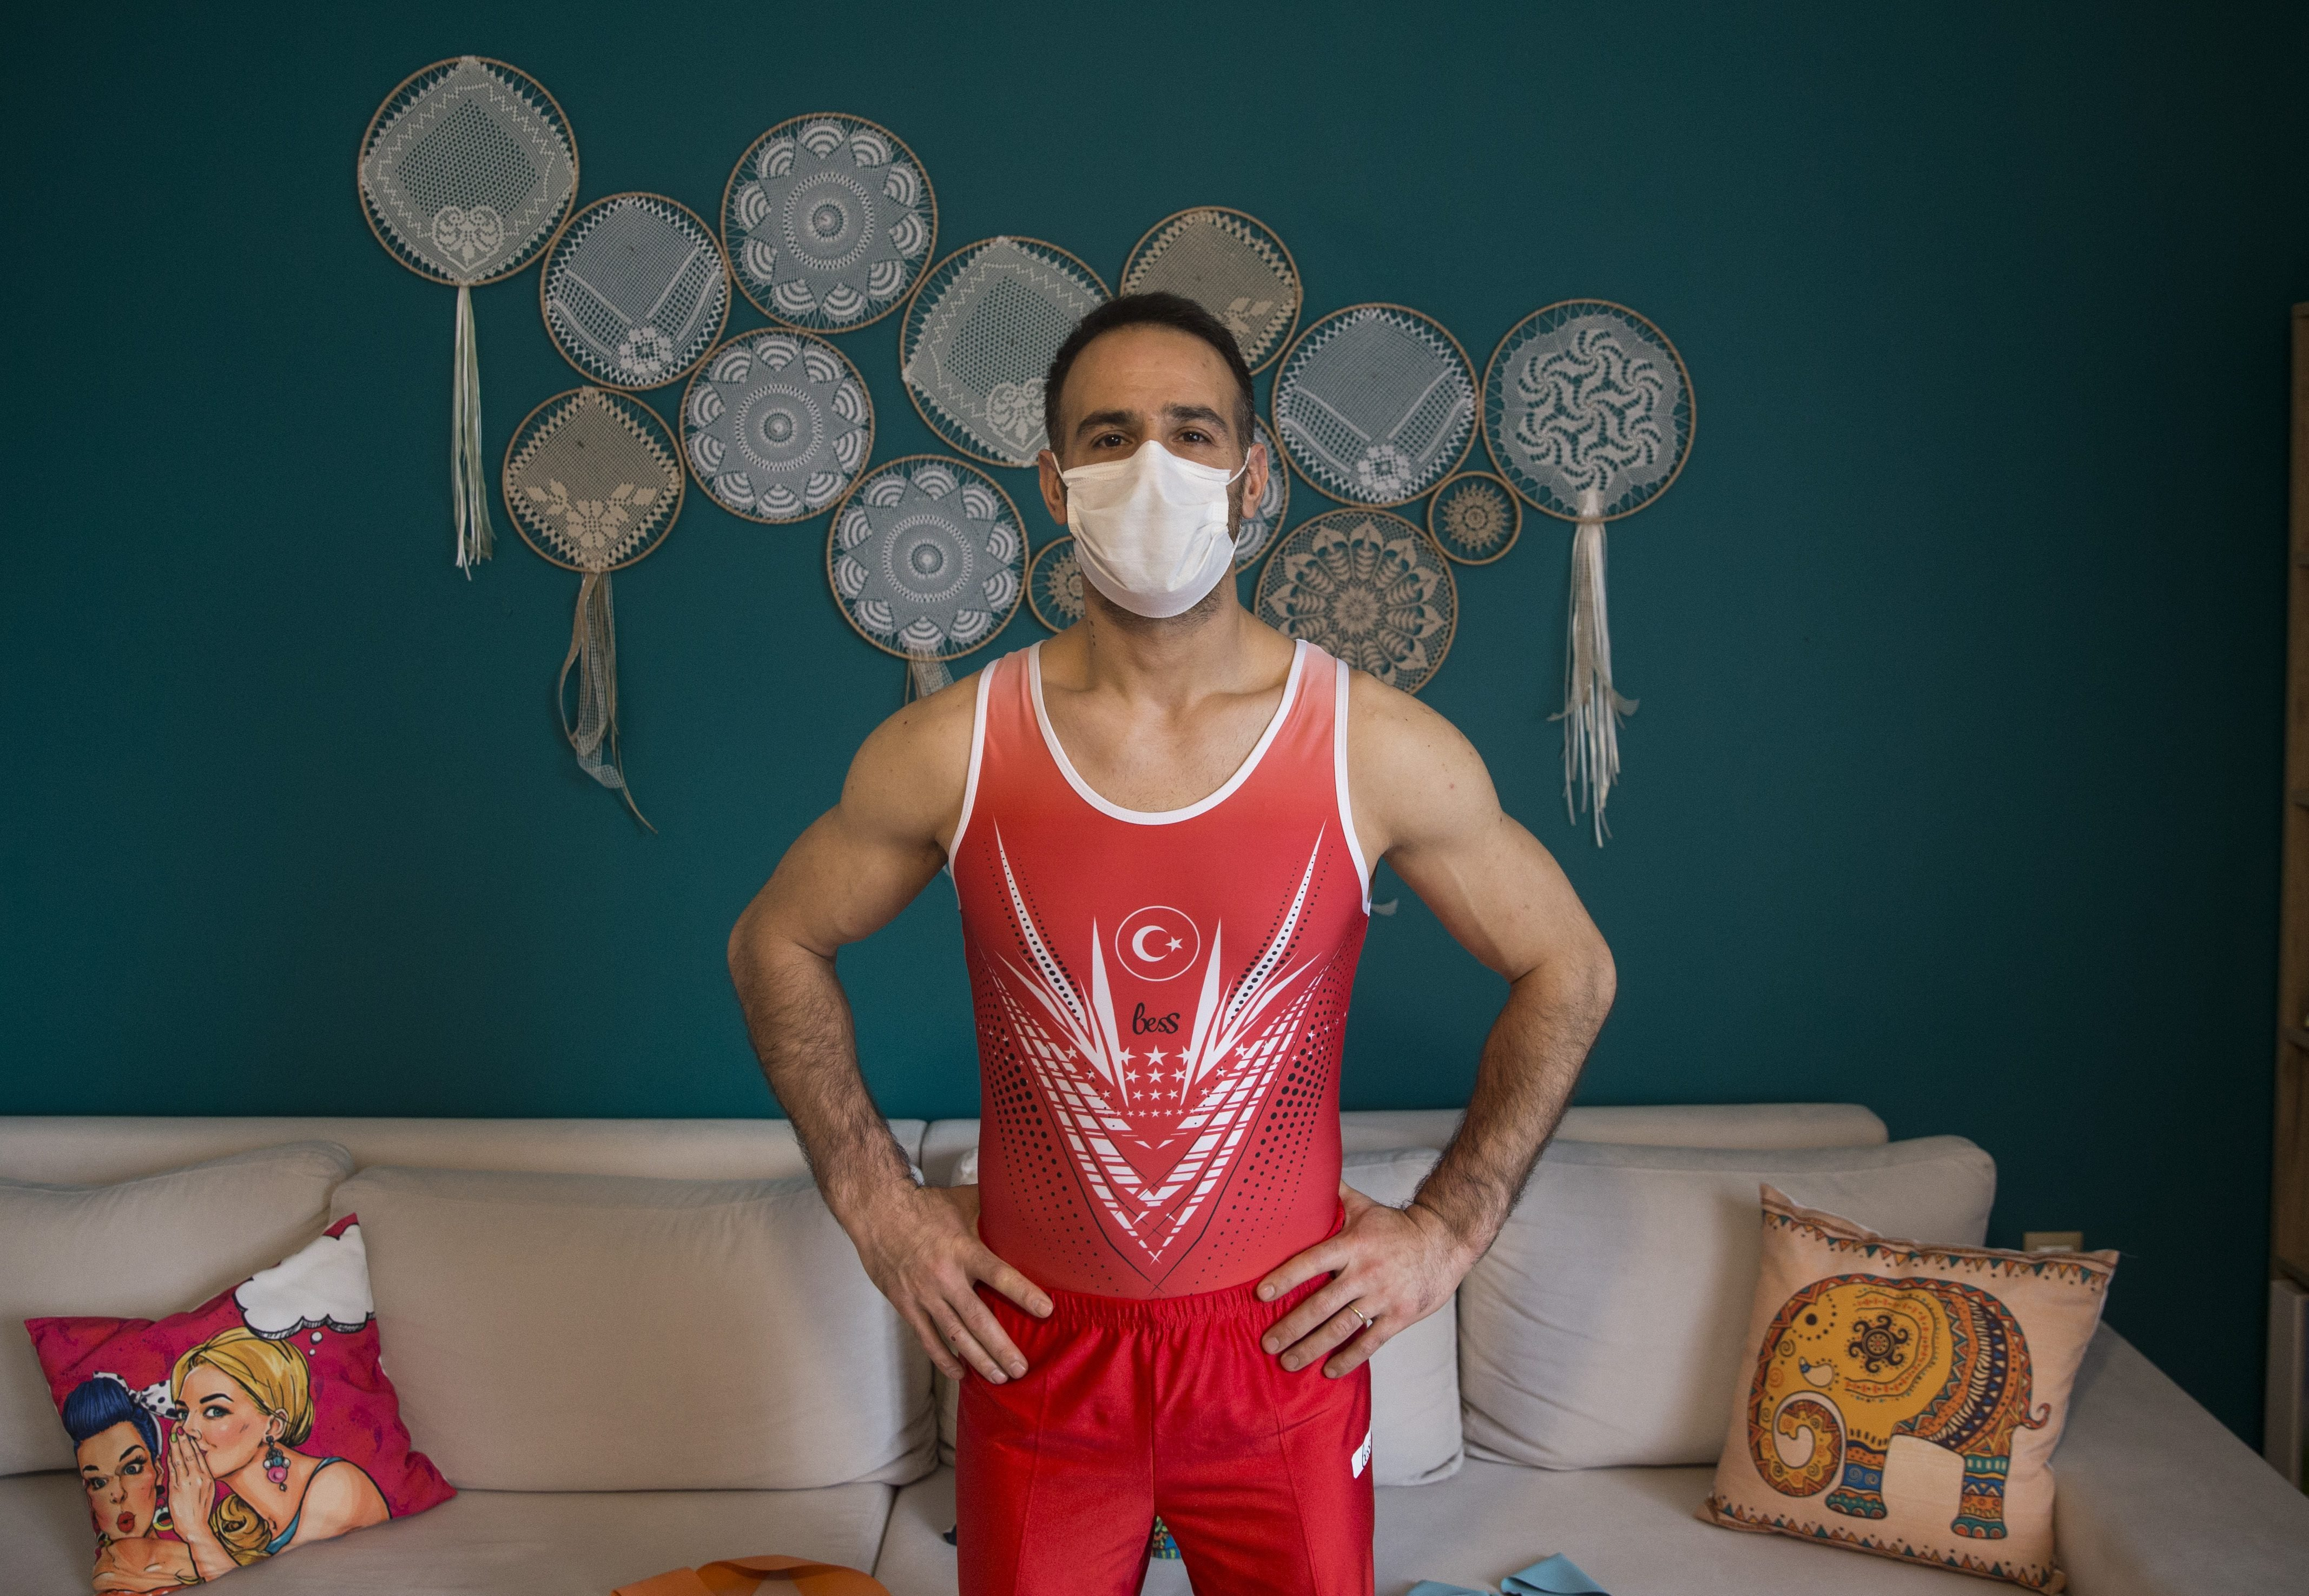 Turkish athlete trains at home during Covid-19 pandemic